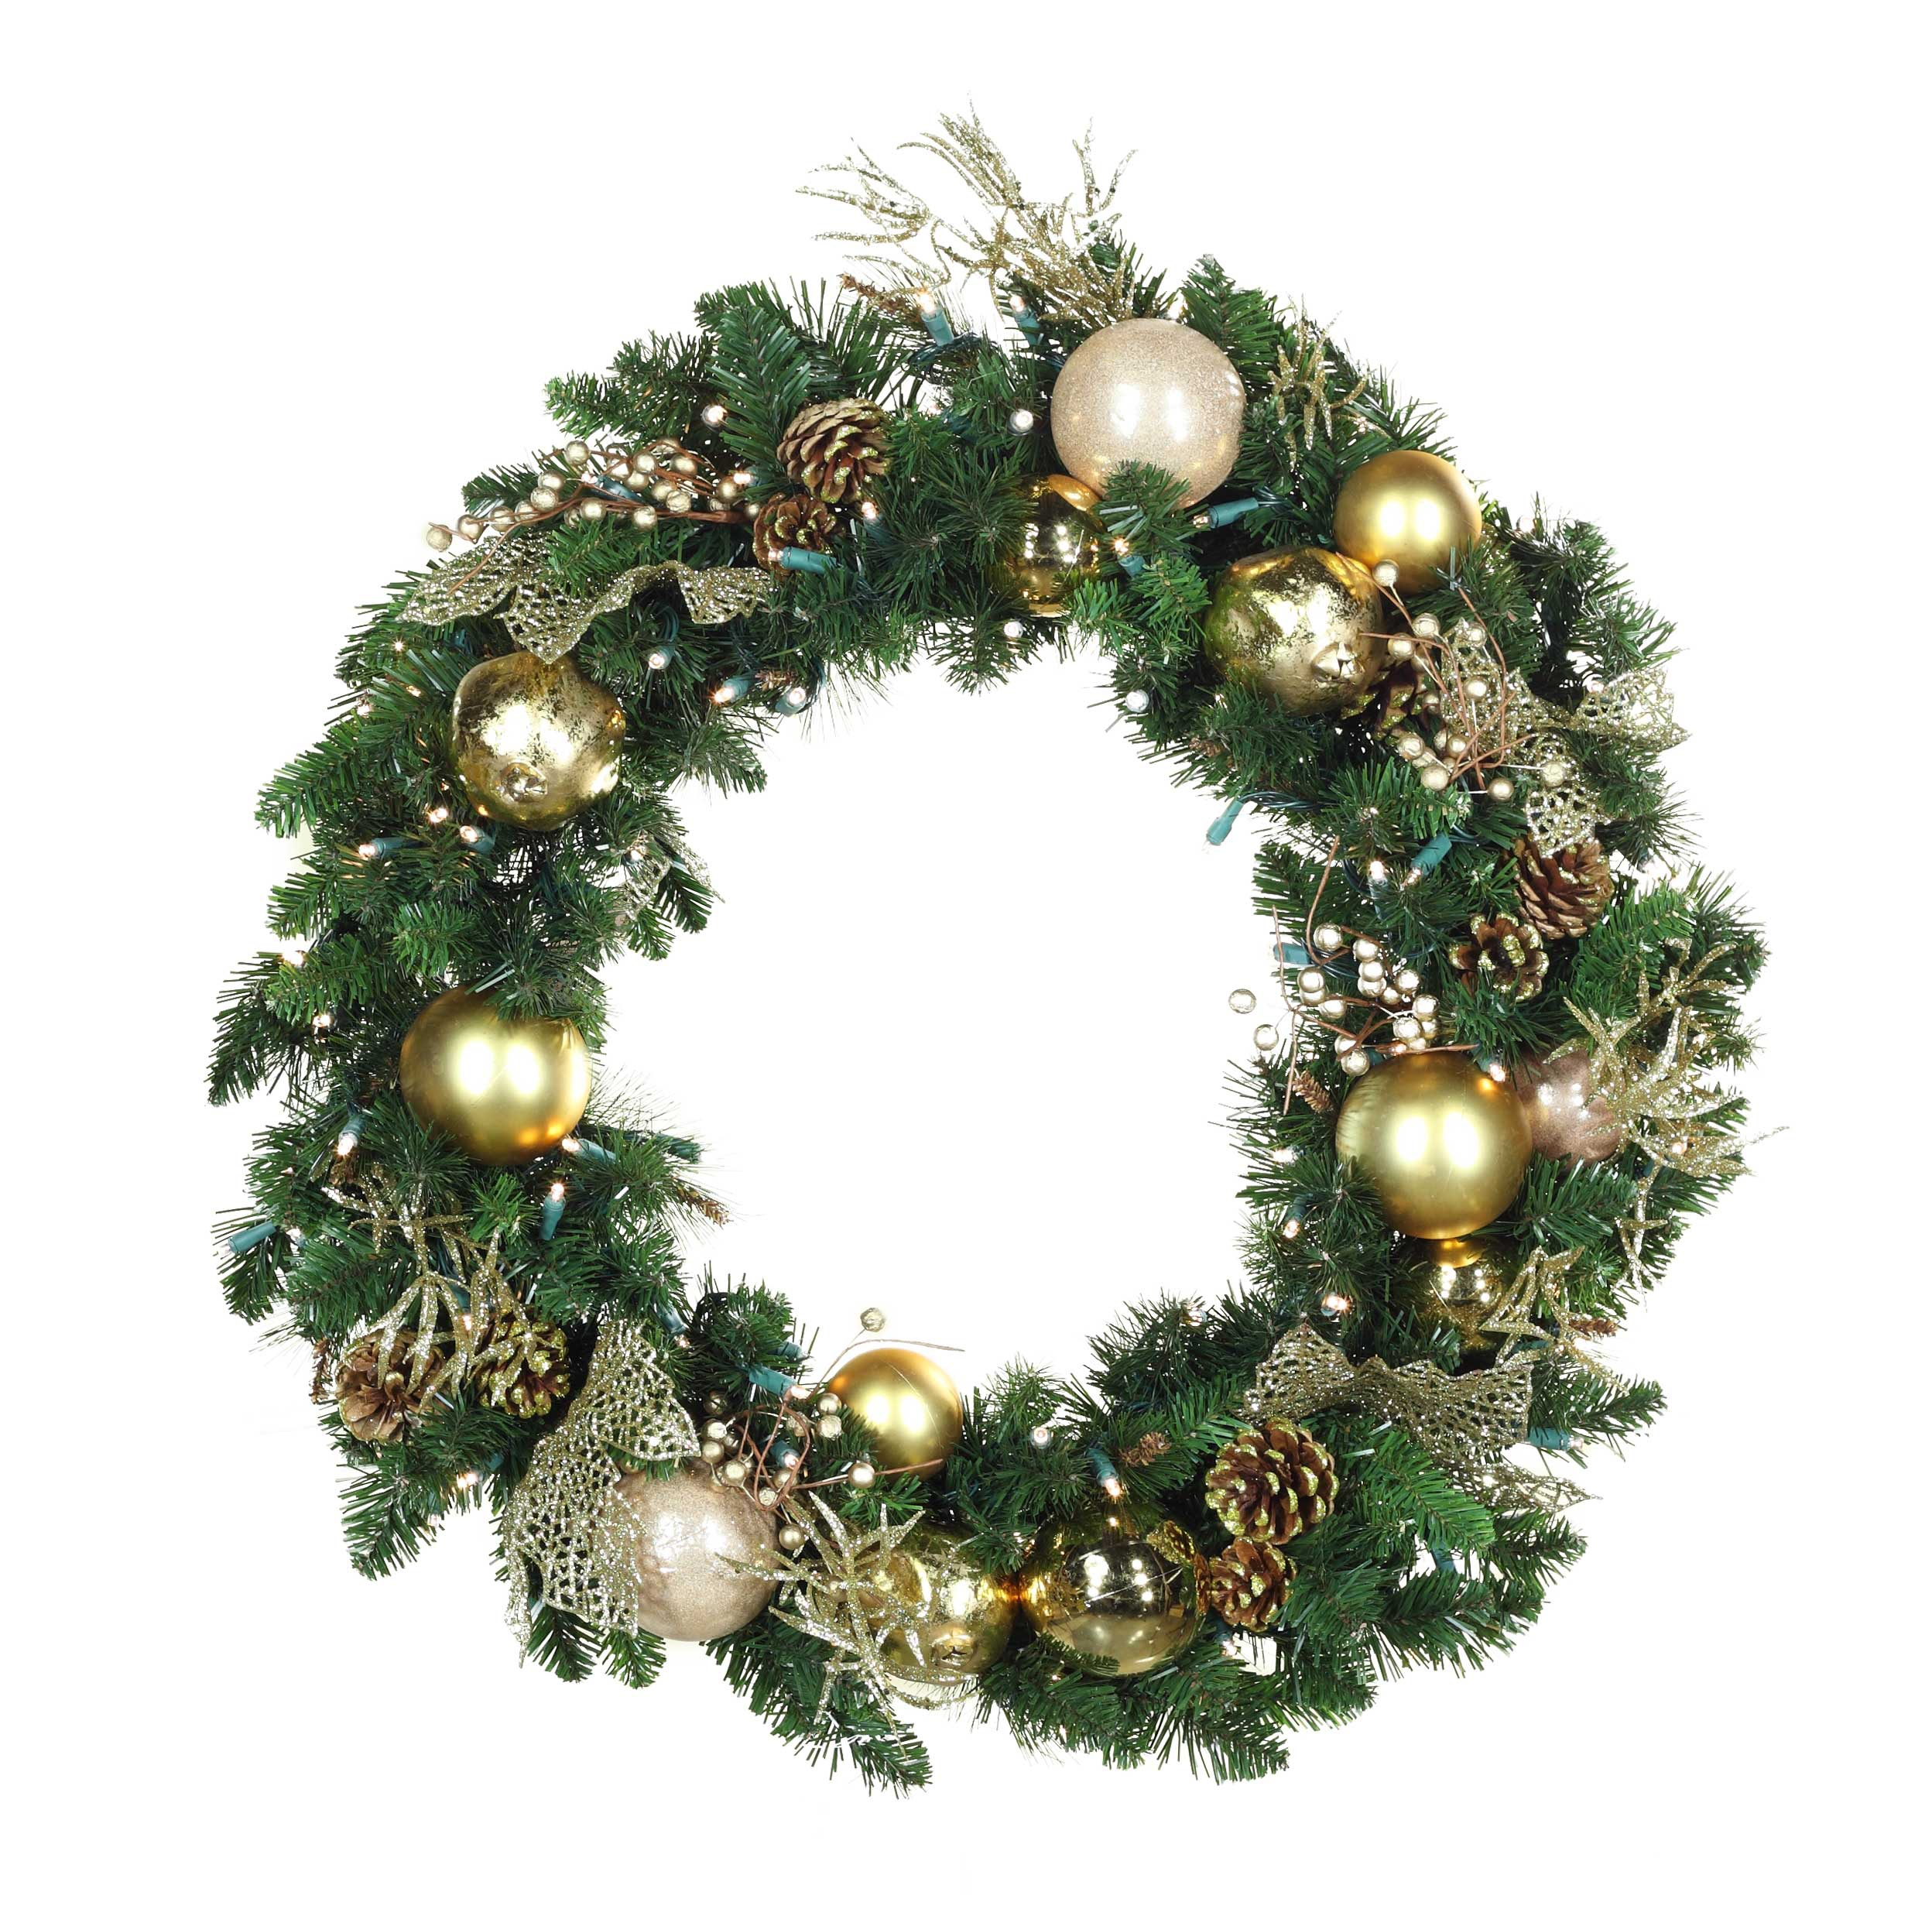 decorative wreaths royal gold battery operated led. Black Bedroom Furniture Sets. Home Design Ideas